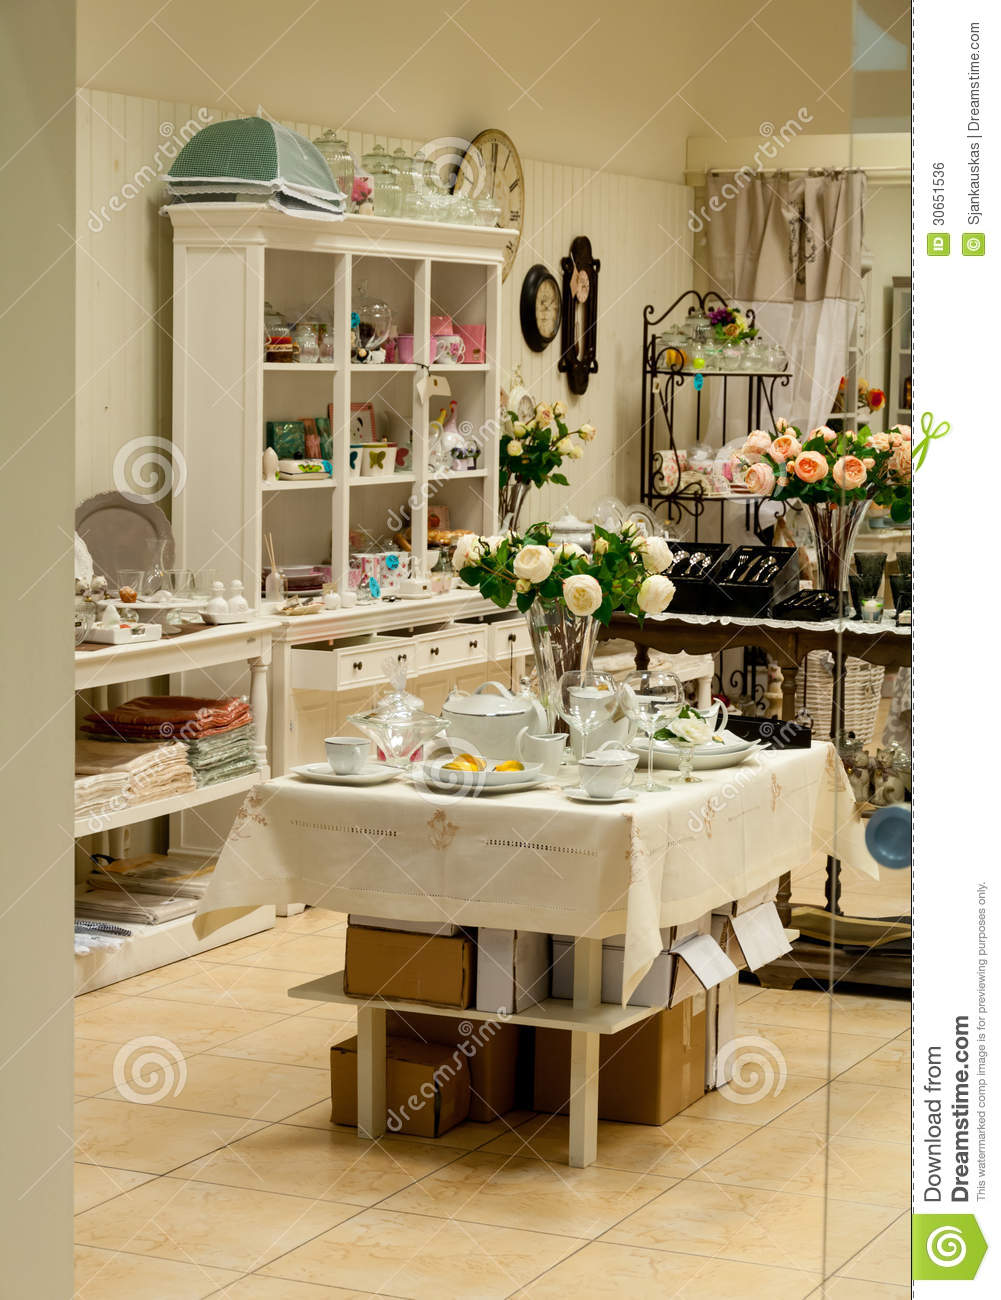 Home decor and dishes shop royalty free stock image for Accessories house decoration